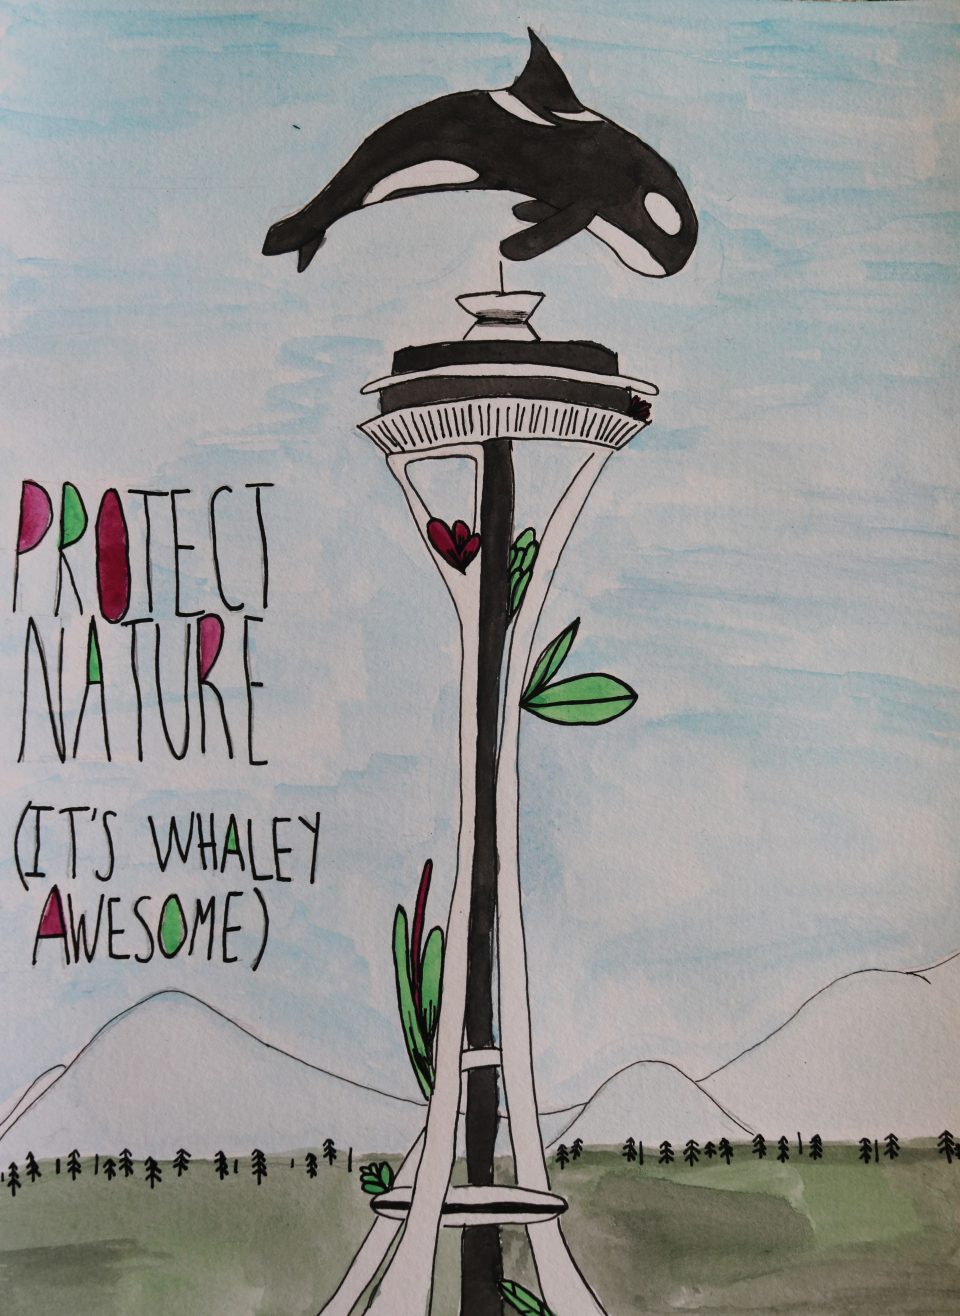 Protecting nature youth artwork, with an orca jumping over the Seattle Space Needle